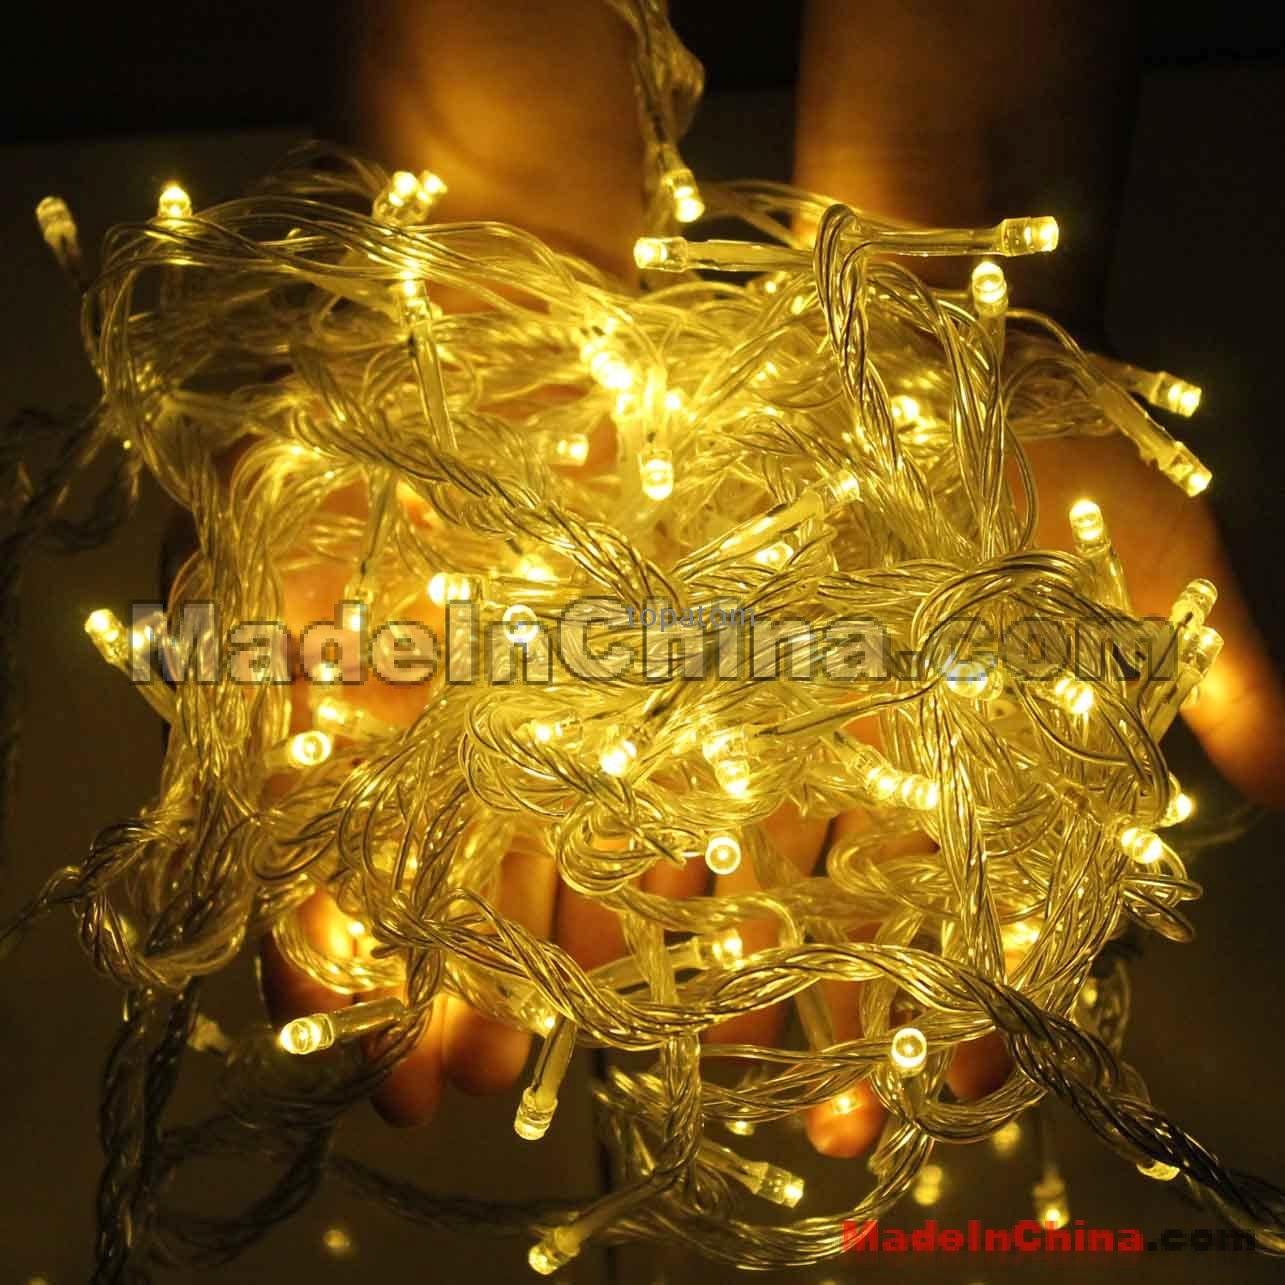 Led Christmas String Lights For Halloween Party